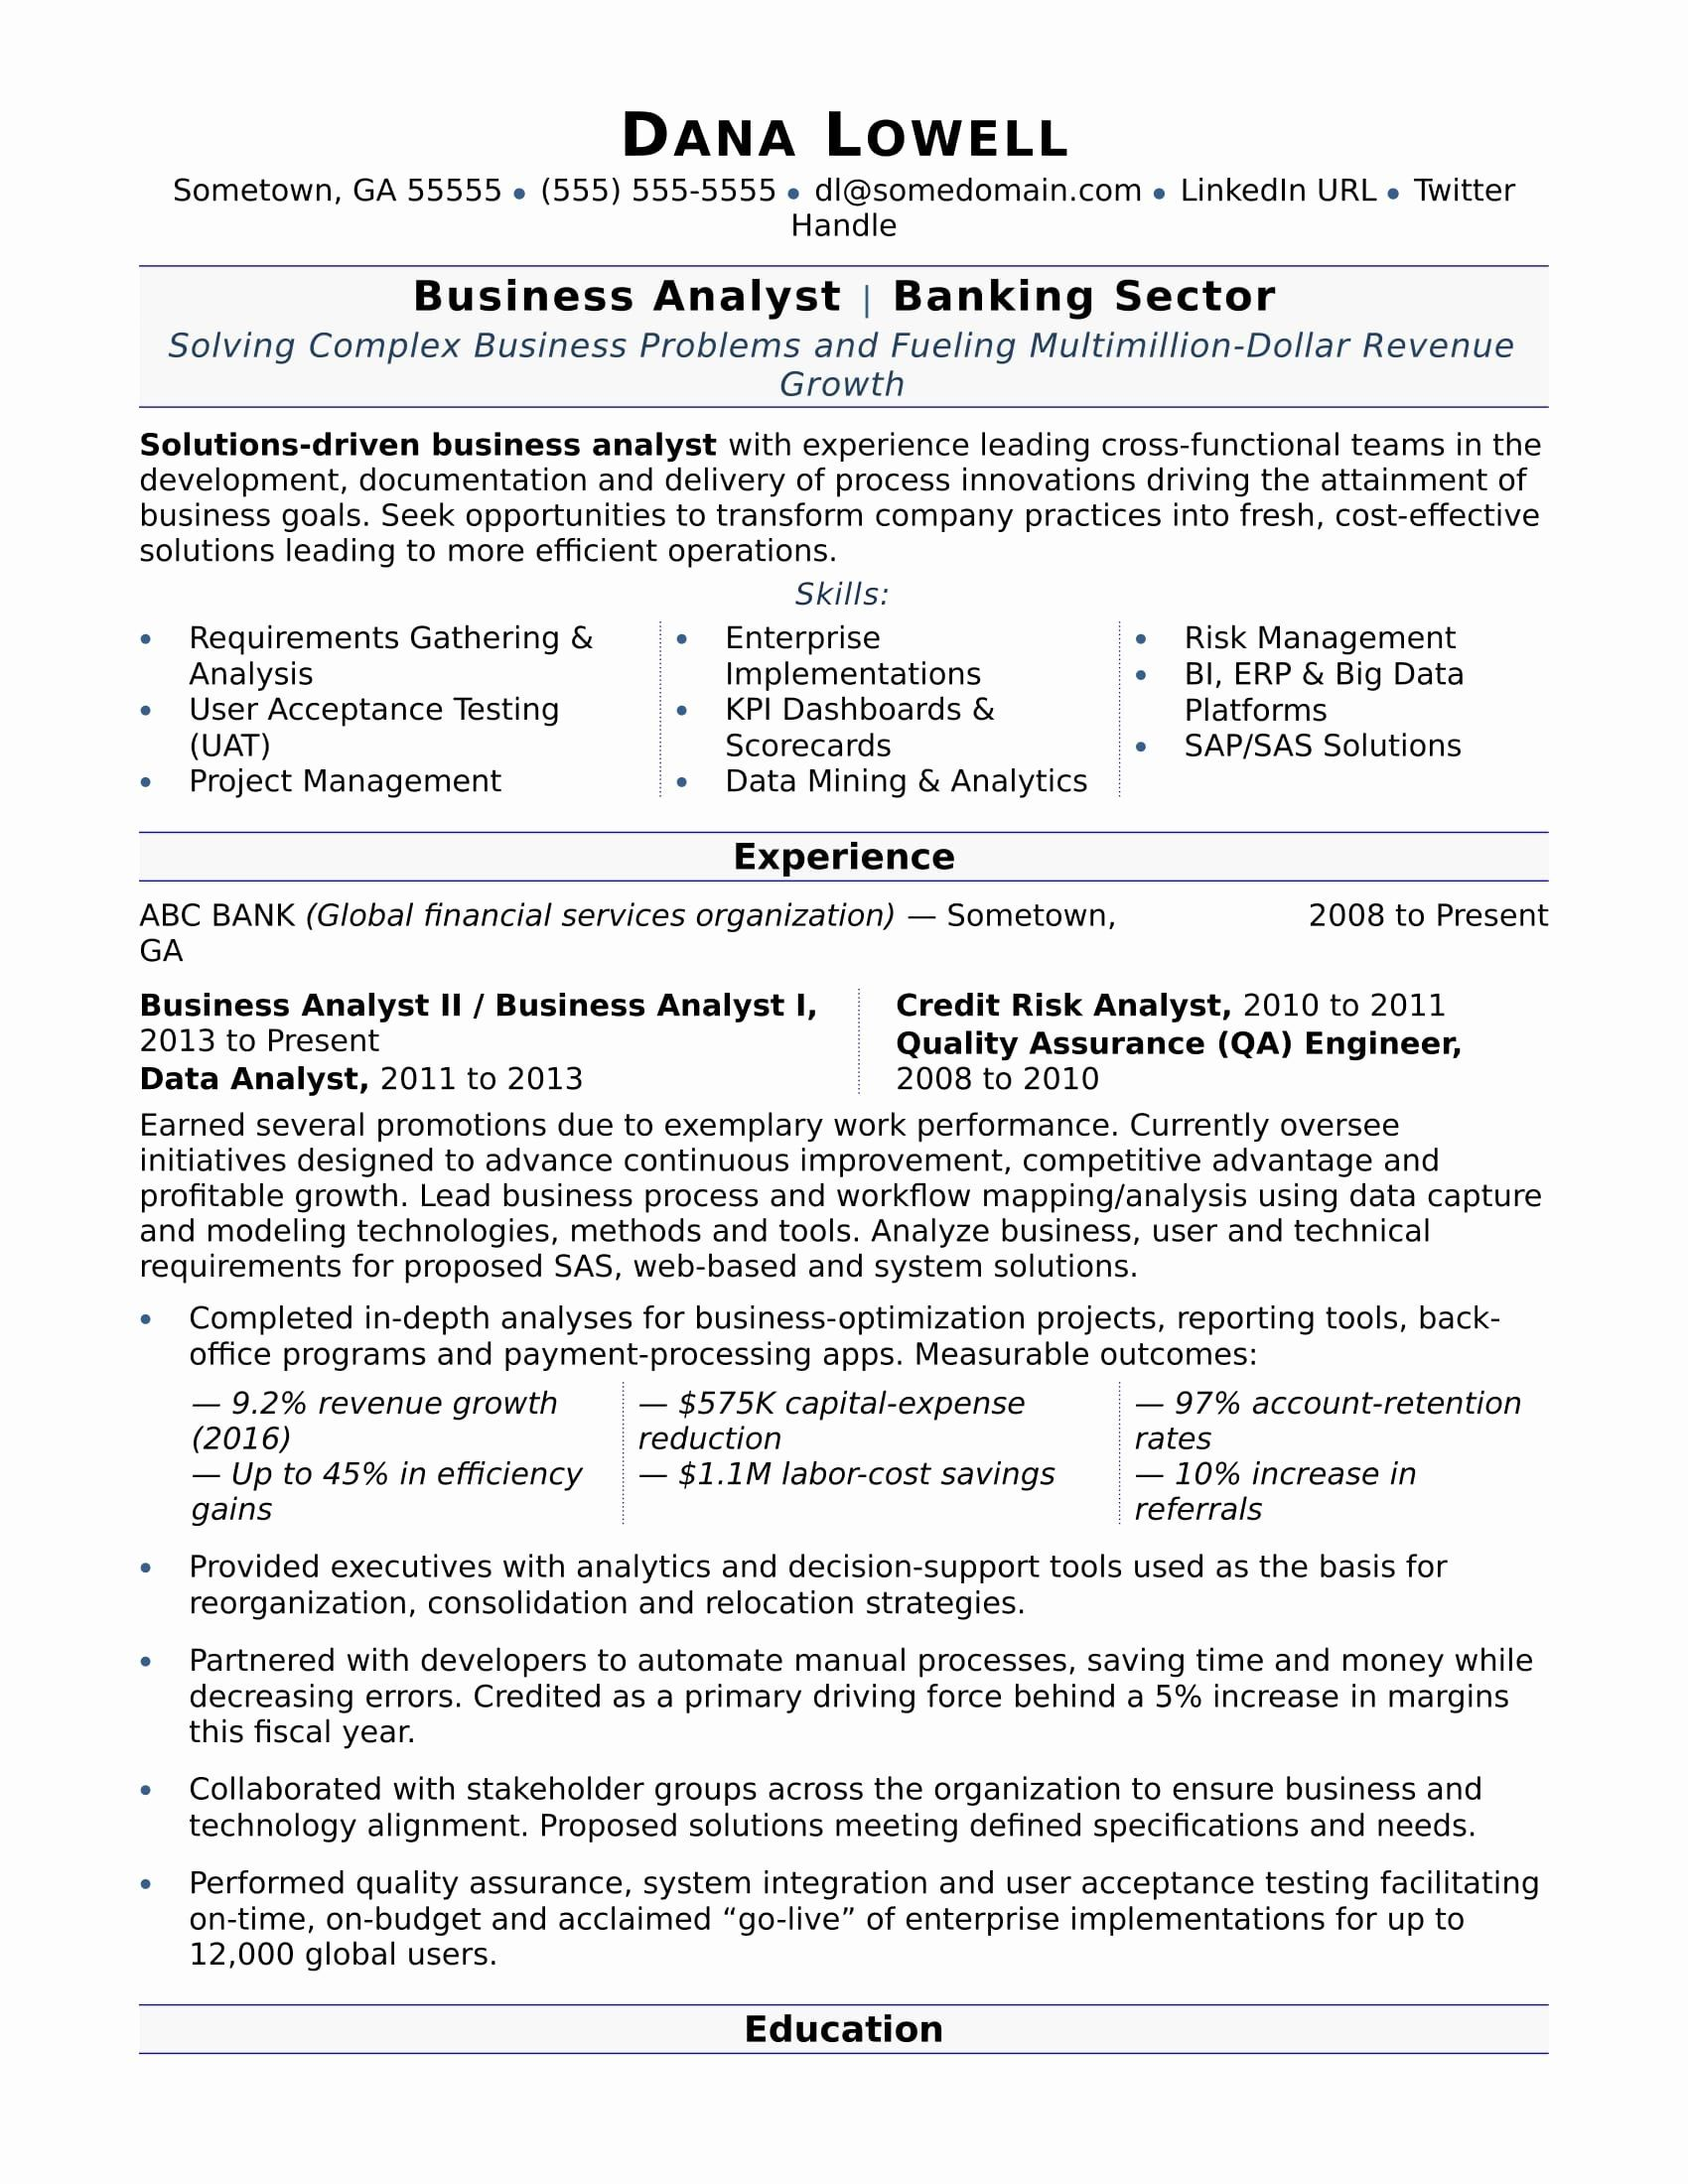 Small Business Mission Statement Examples In 2020 Business Analyst Resume Business Analyst Teacher Resume Examples